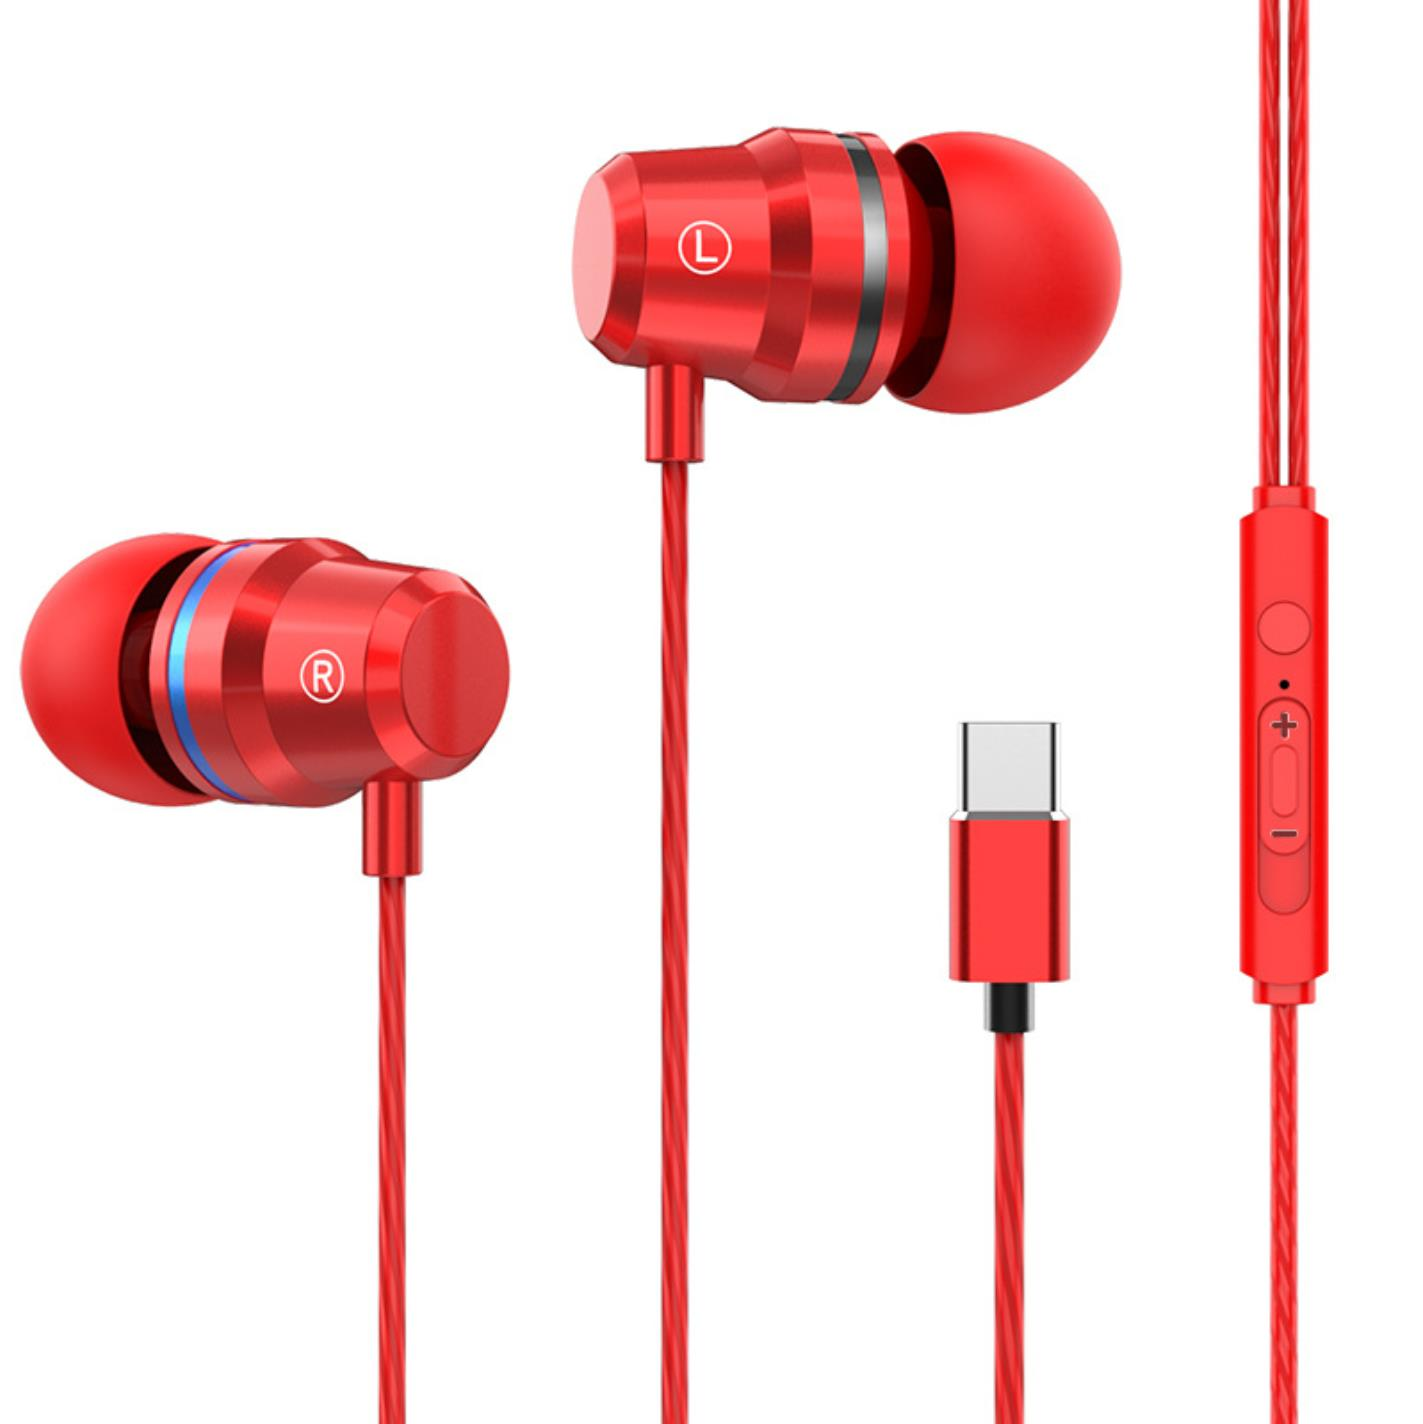 G2 Ergonomic Headset Type-c Subwoofer In-ear Wired  Control  Headset With Built-in High-definition Microphone Red